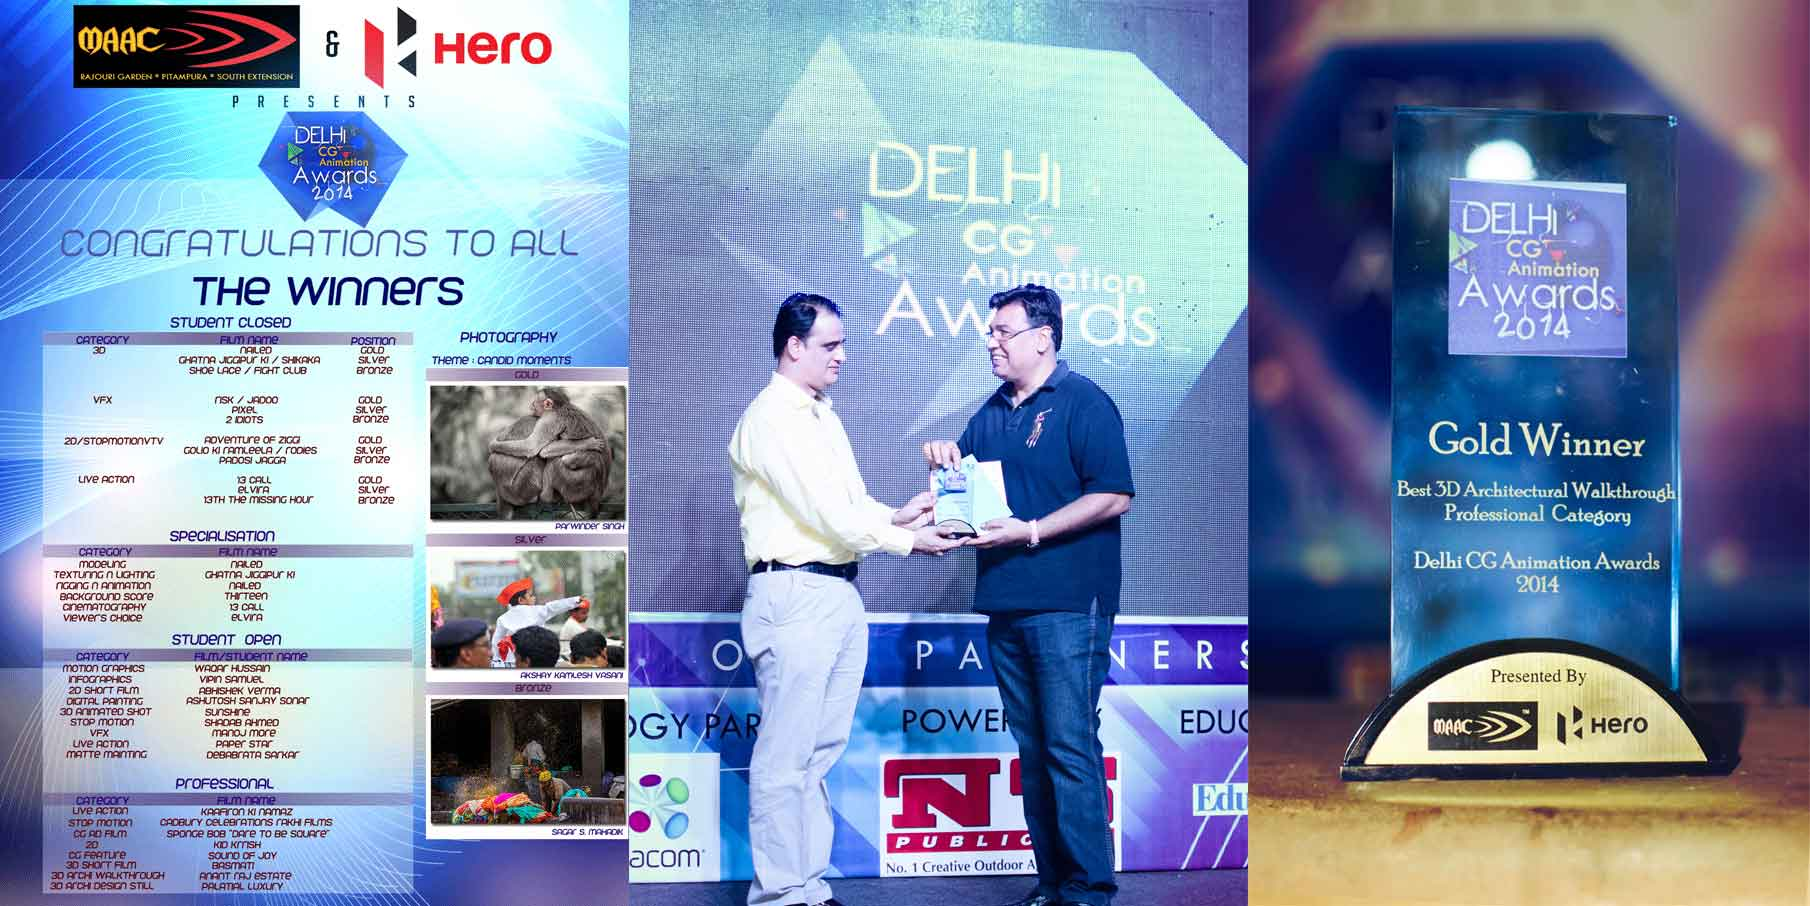 Anant Raj Estates the Delhi CG Animation Awards